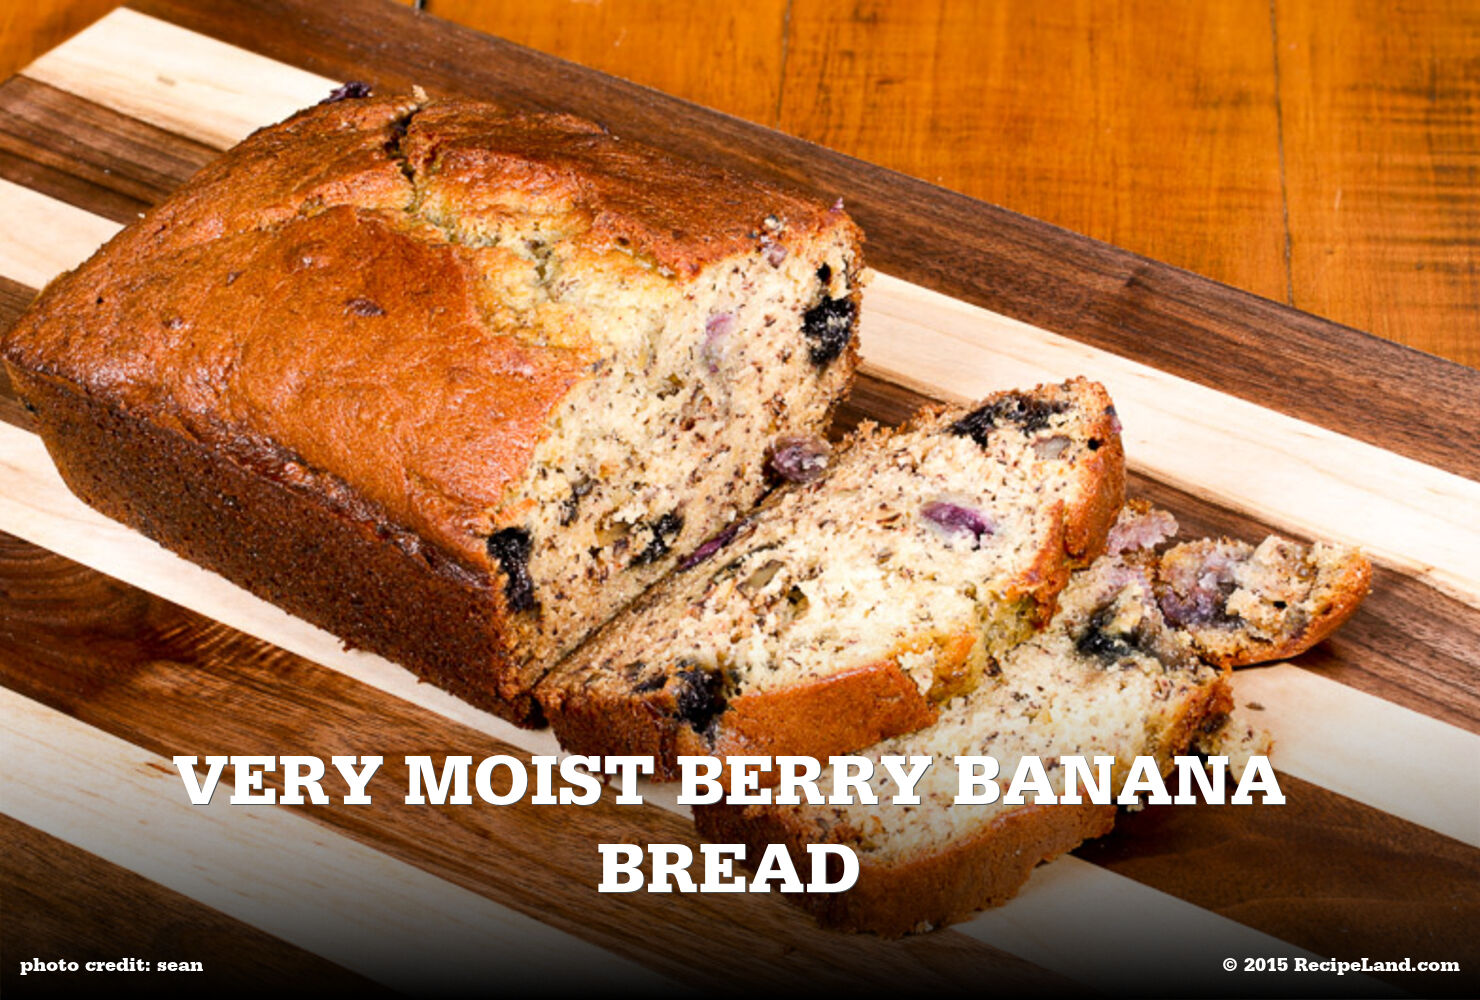 Very Moist Berry Banana Bread